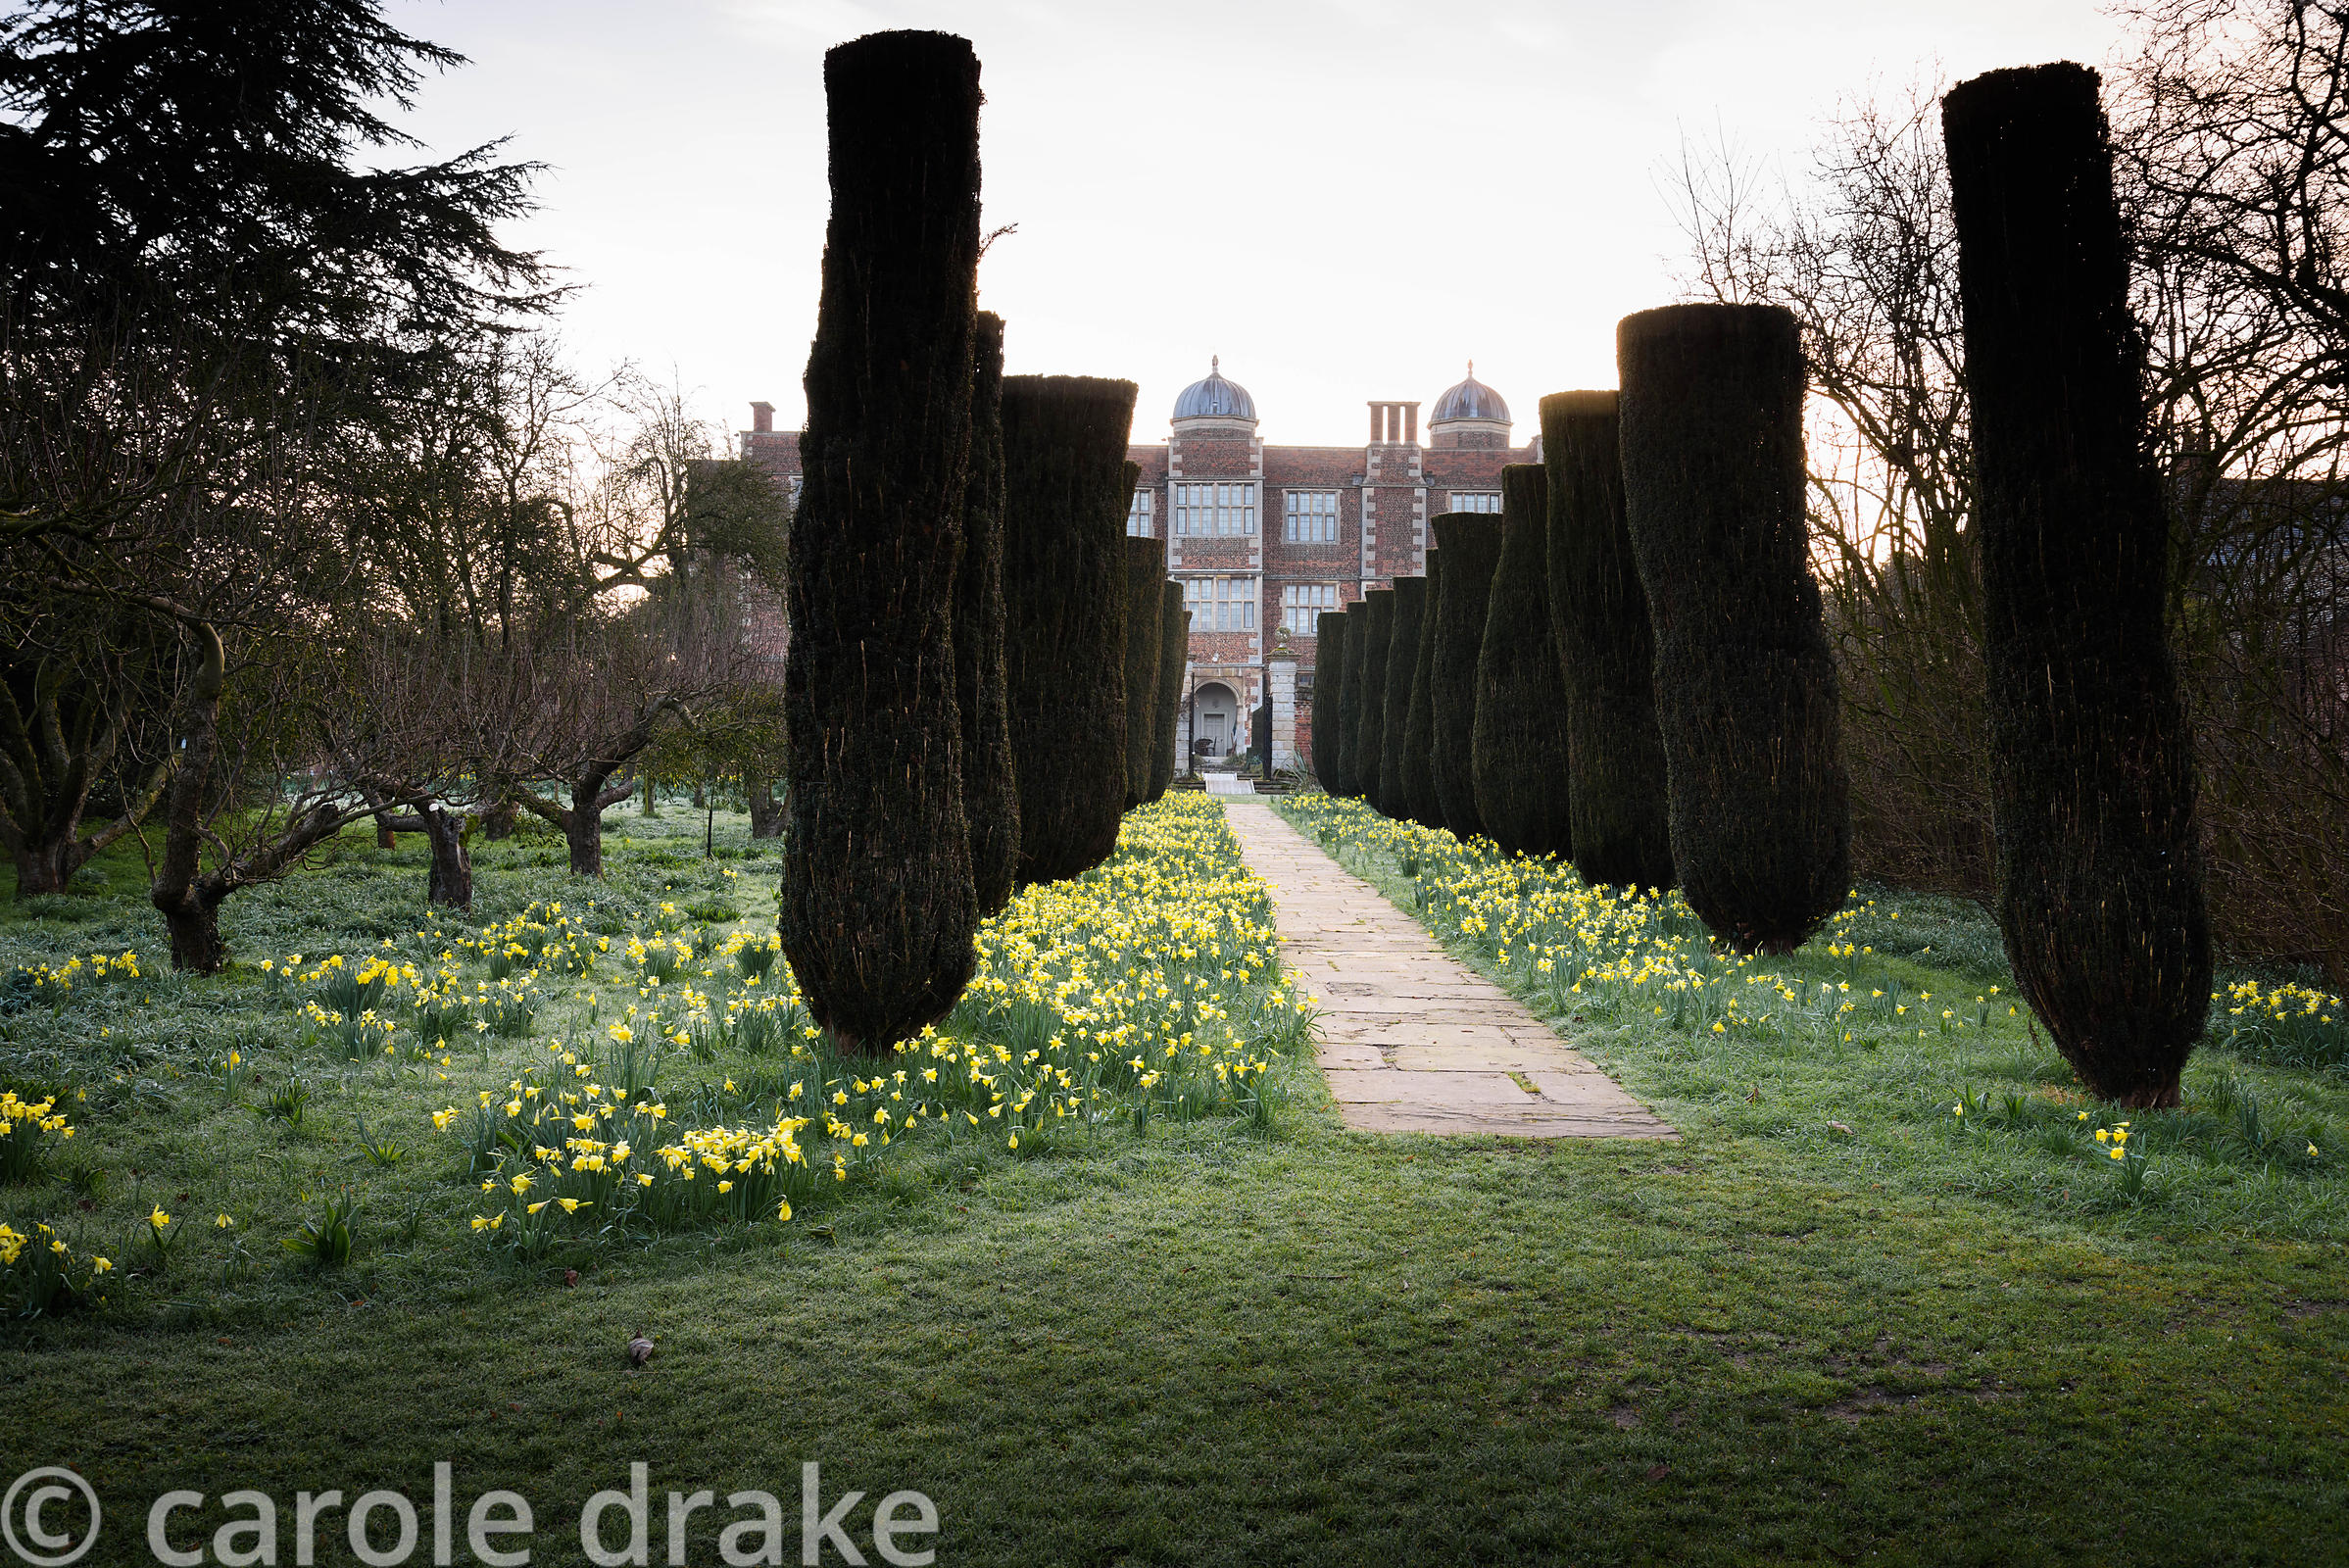 Yew avenue surrounded by naturalised daffodils at Doddington Hall, Lincolnshire in March